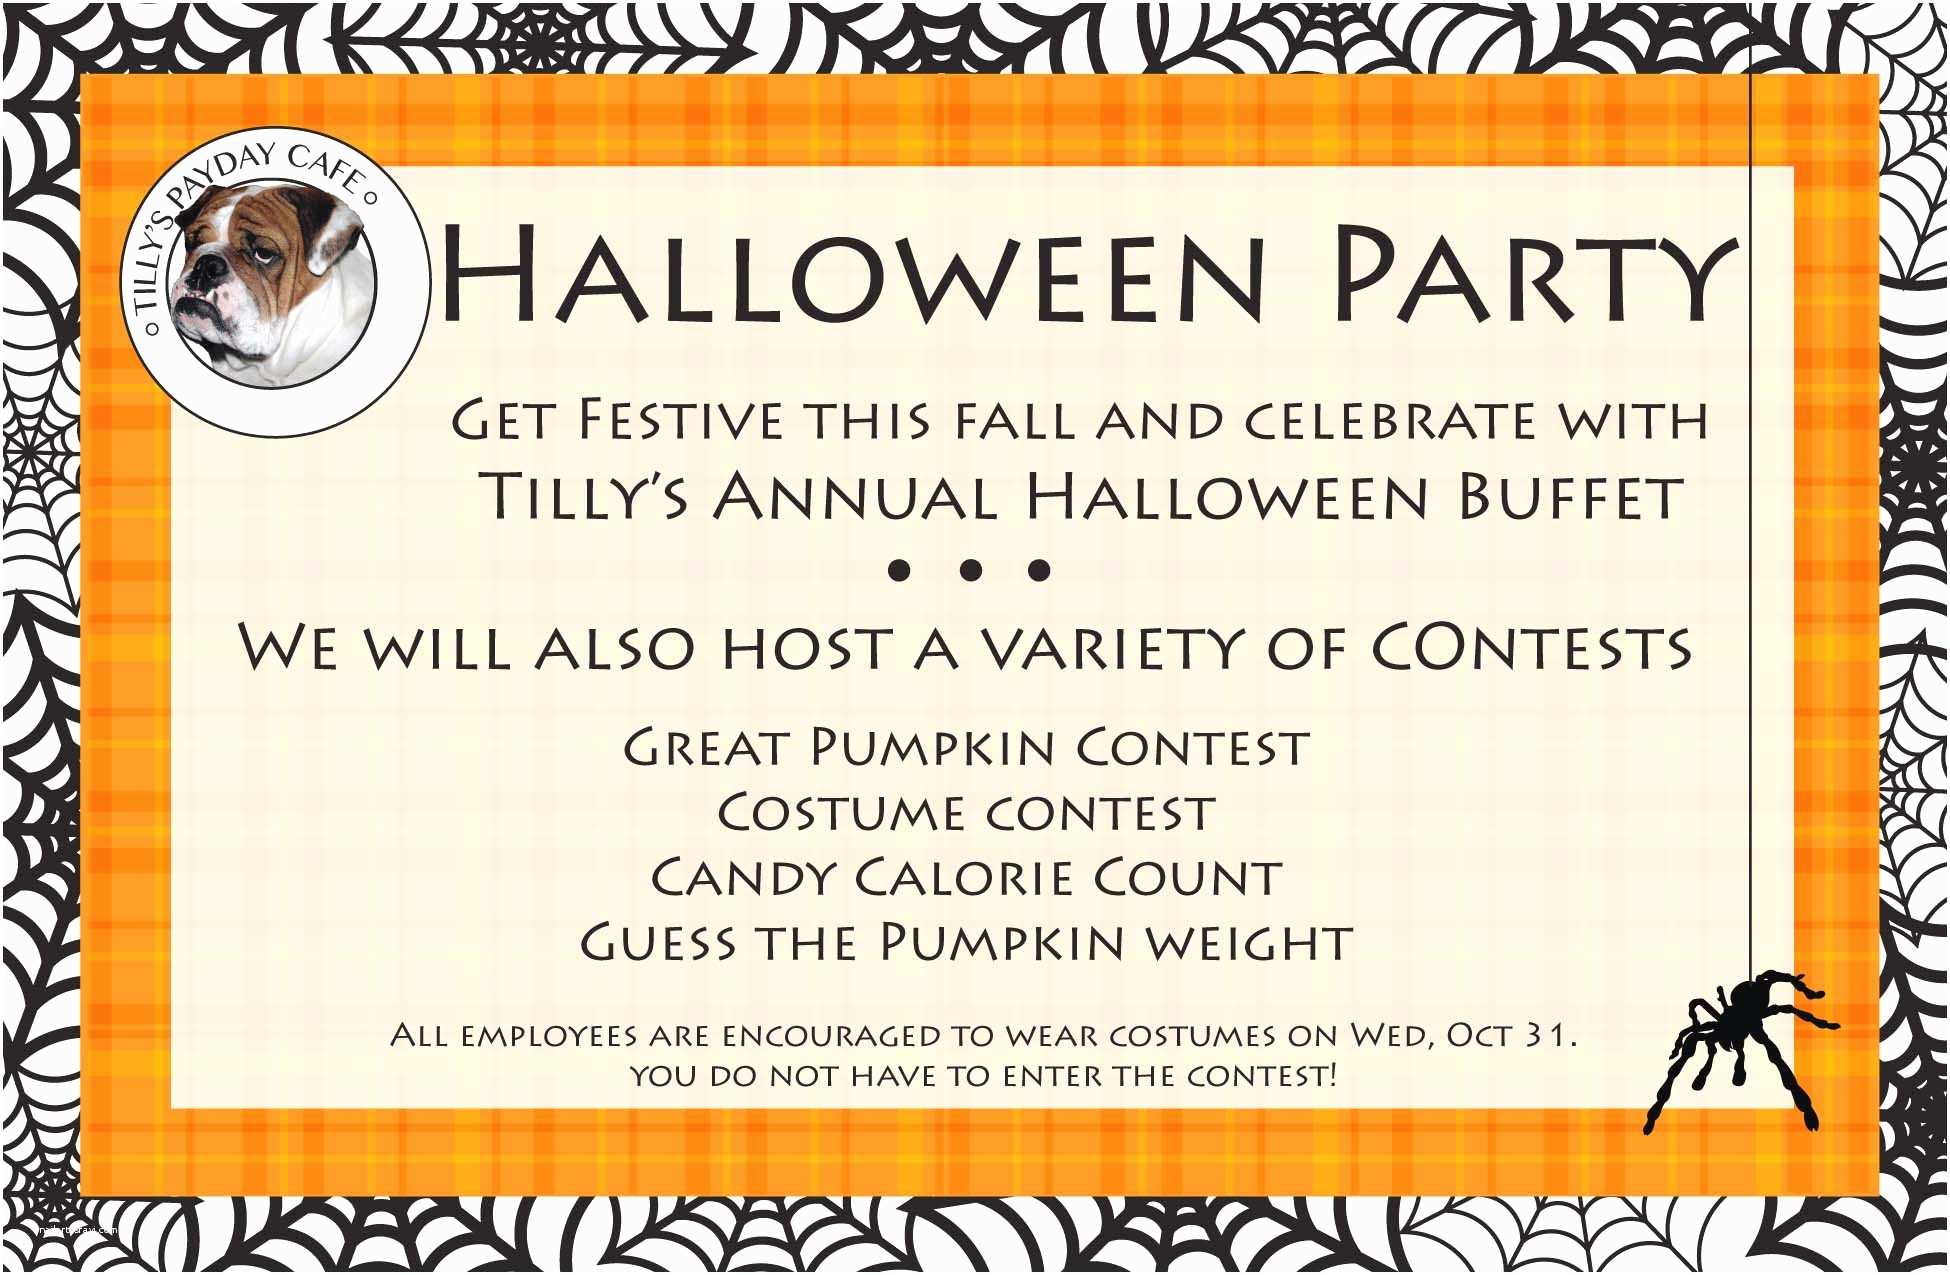 Office Party Invitation Wording Halloween Fice Party Invitation – Festival Collections